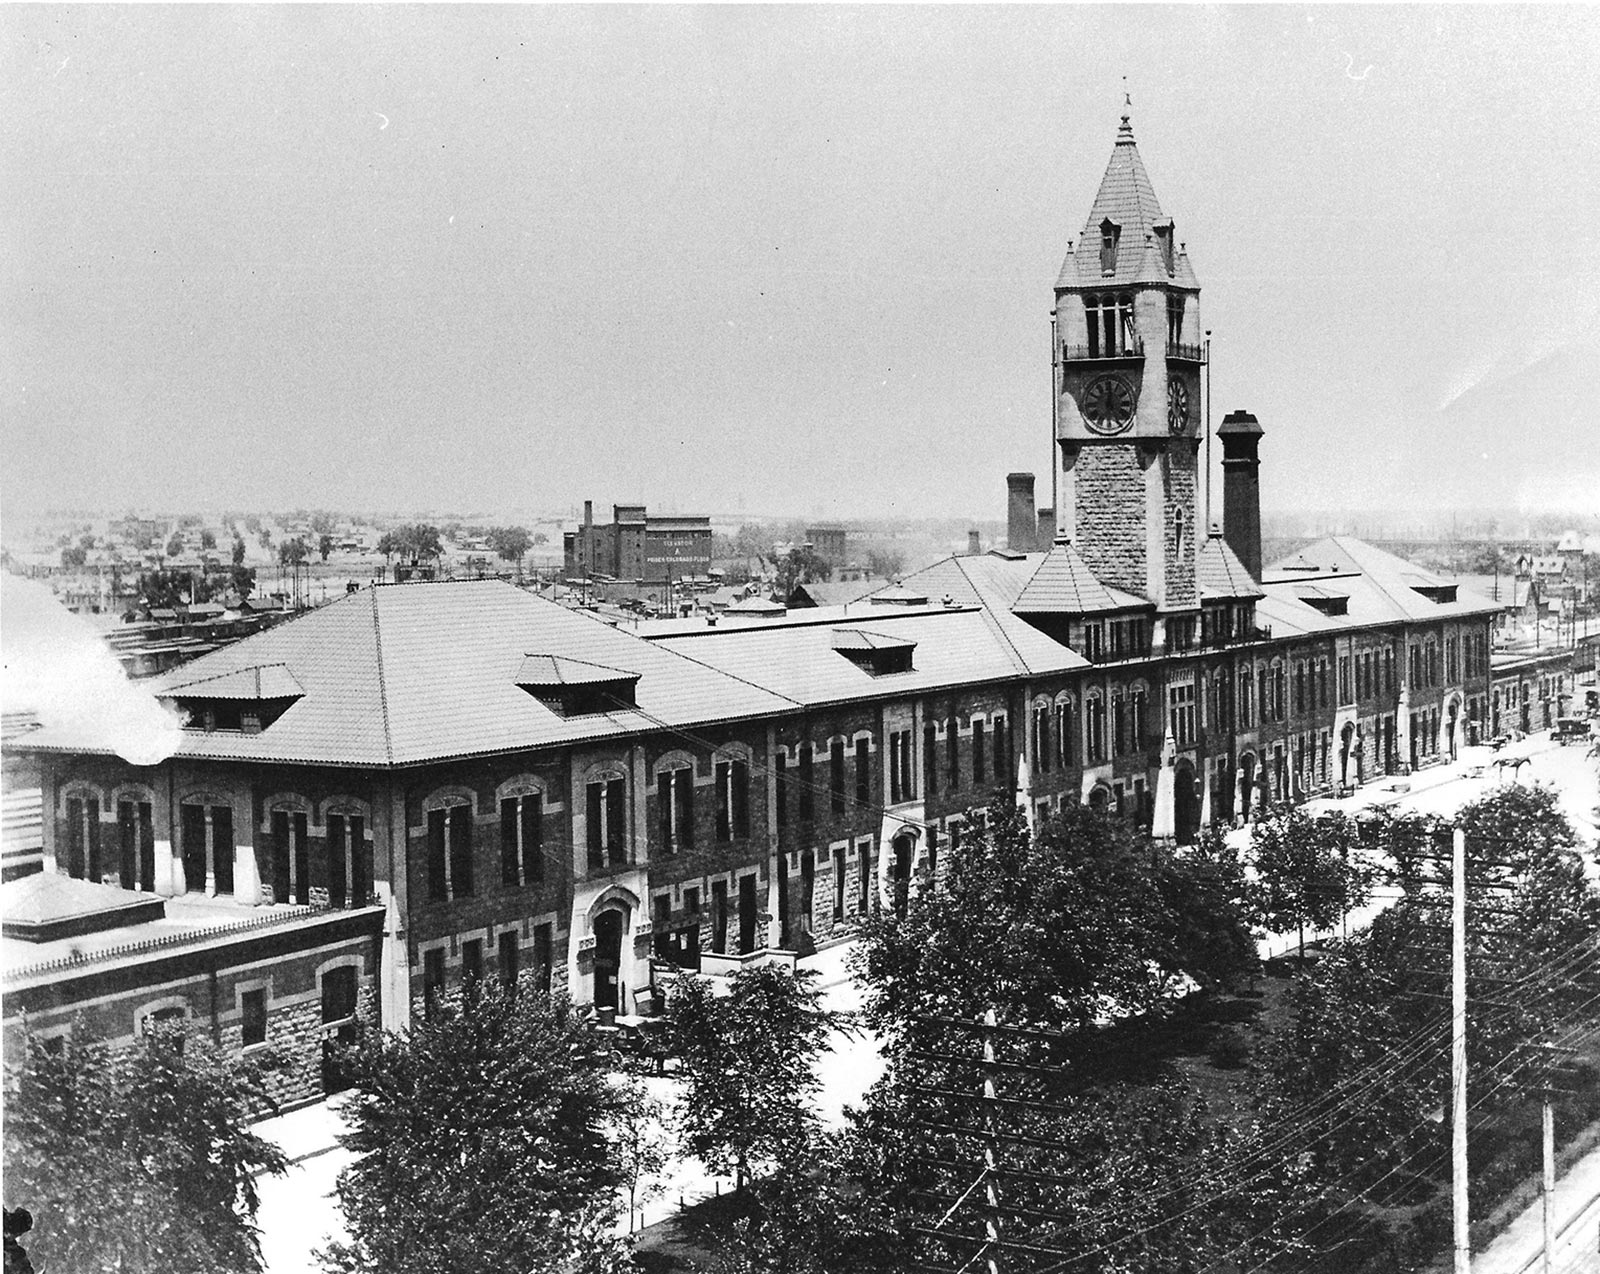 1894 Union Station after fire with new clocktower and simplified roofline. Photo courtesy of History Colorado (F50.883).